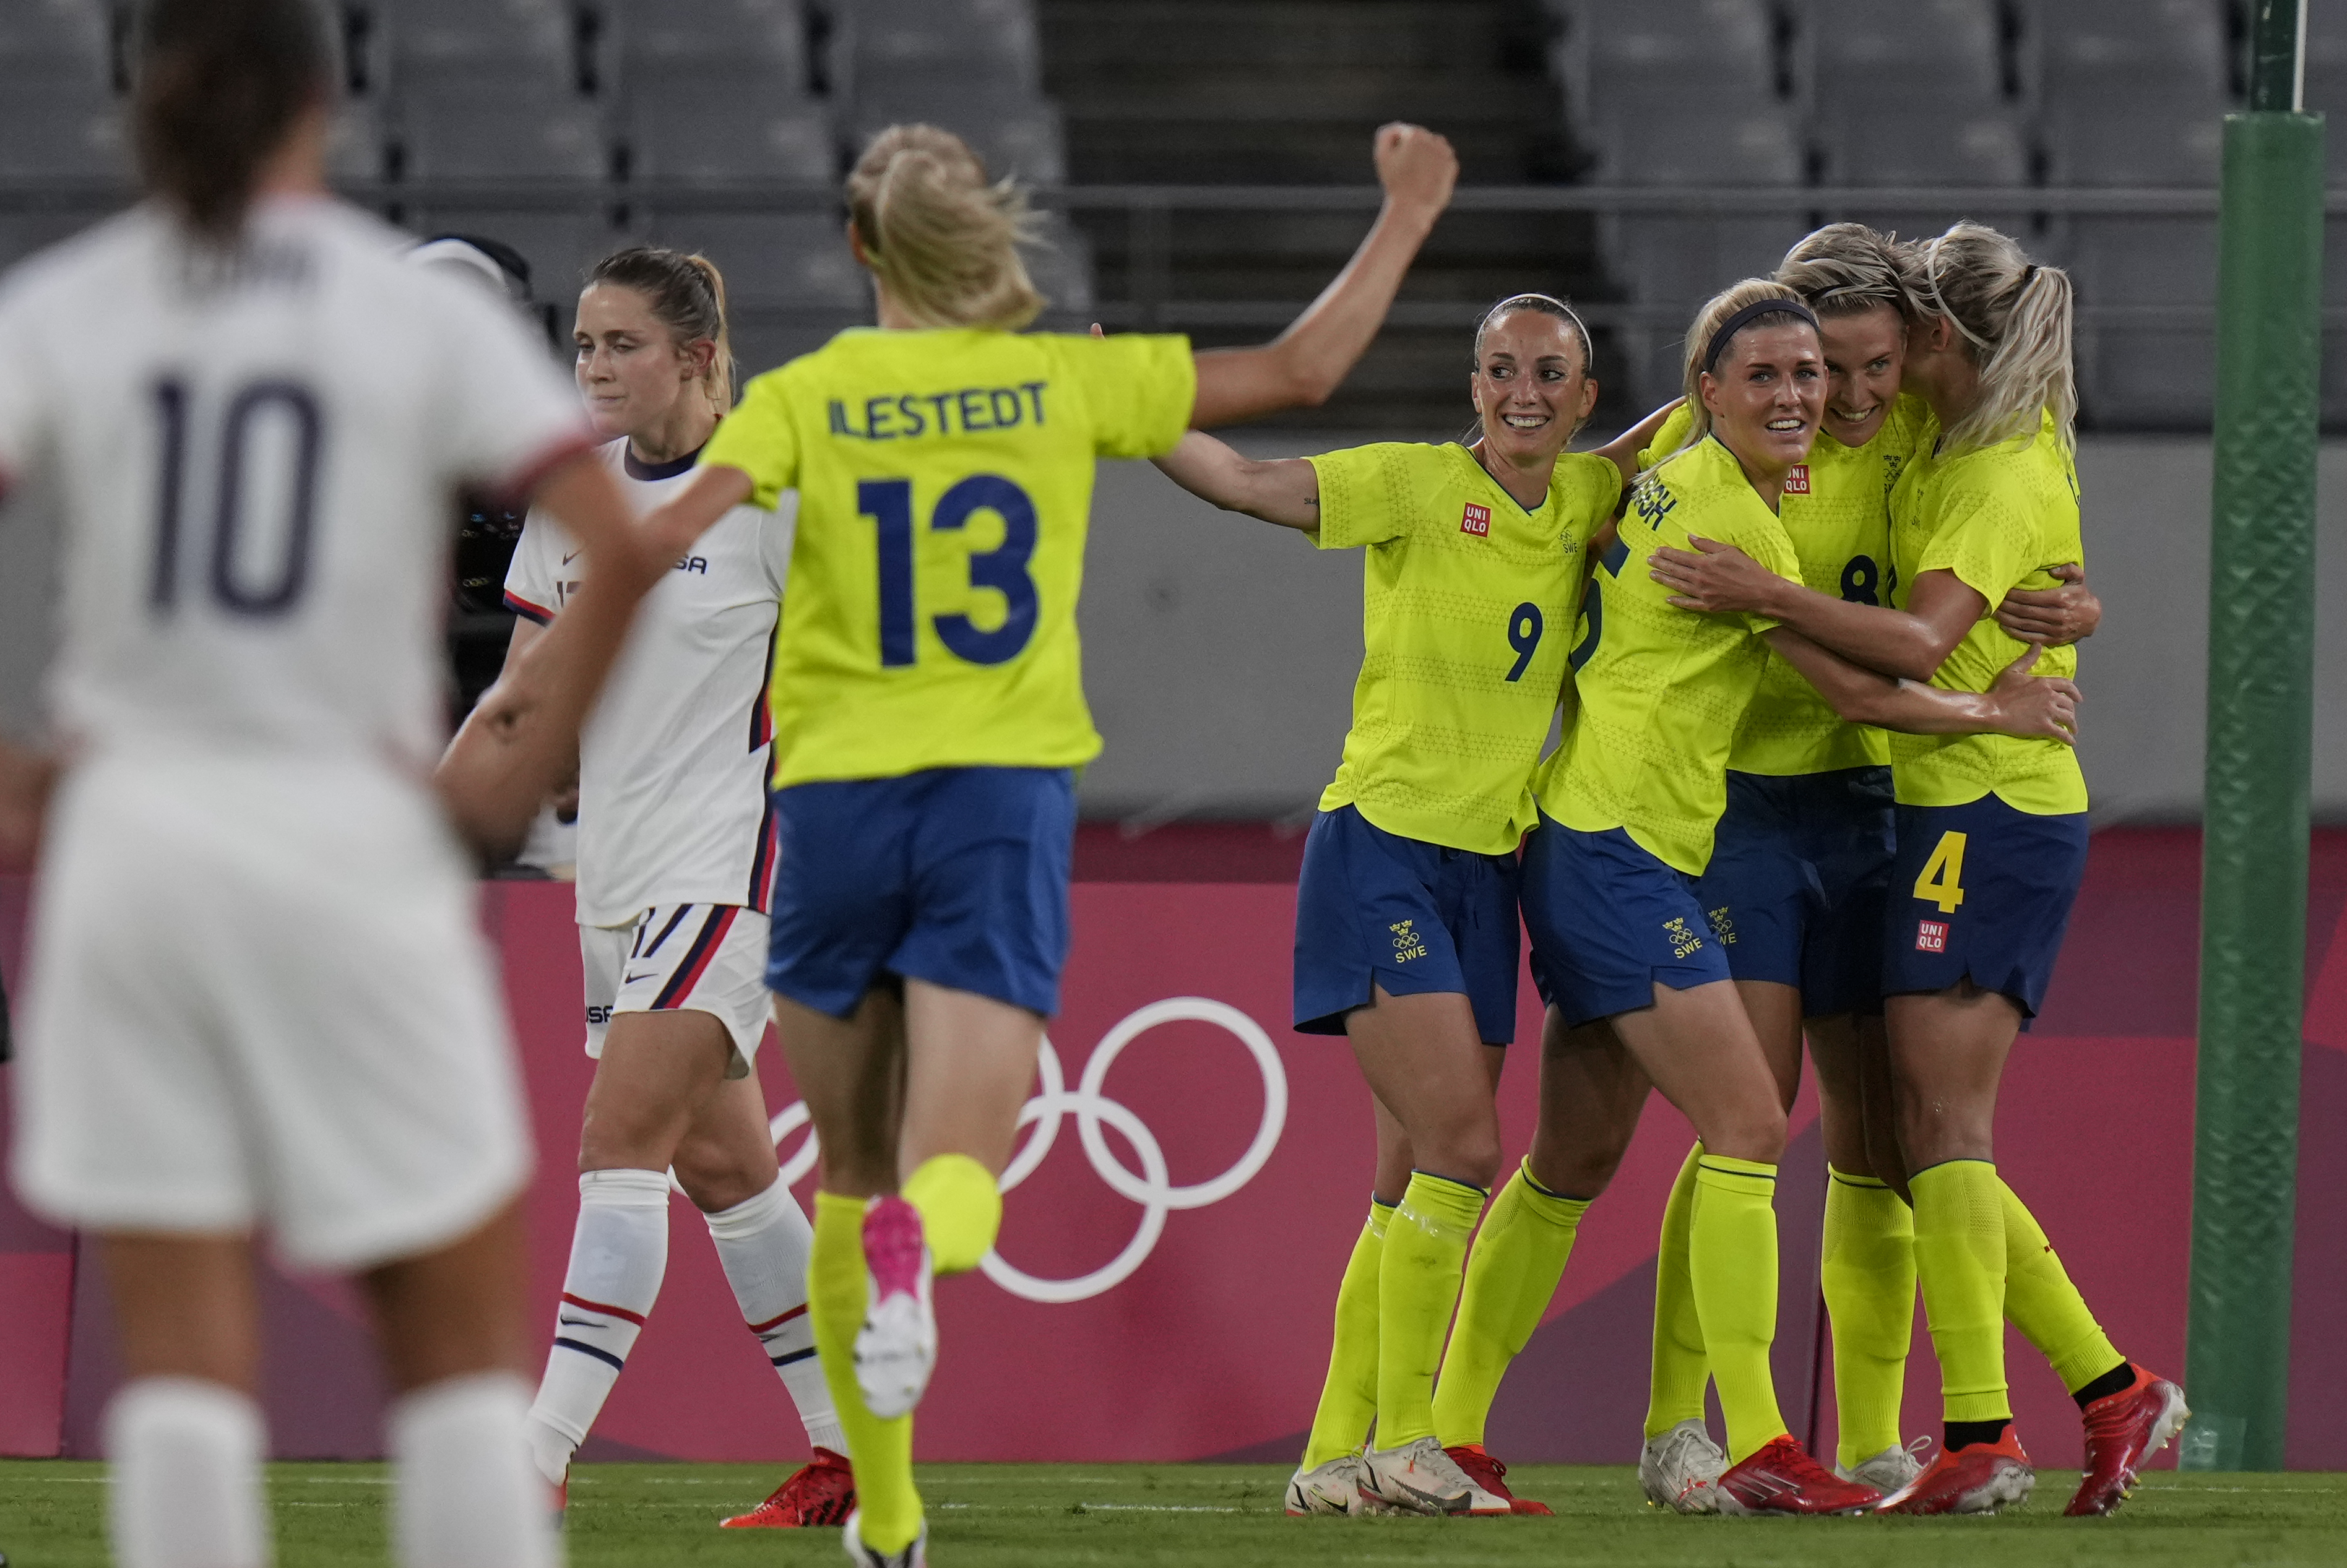 Maybe you would like to learn more about one of these? More Athletes Out Due To Covid Uswnt Loses Opener The Washington Post